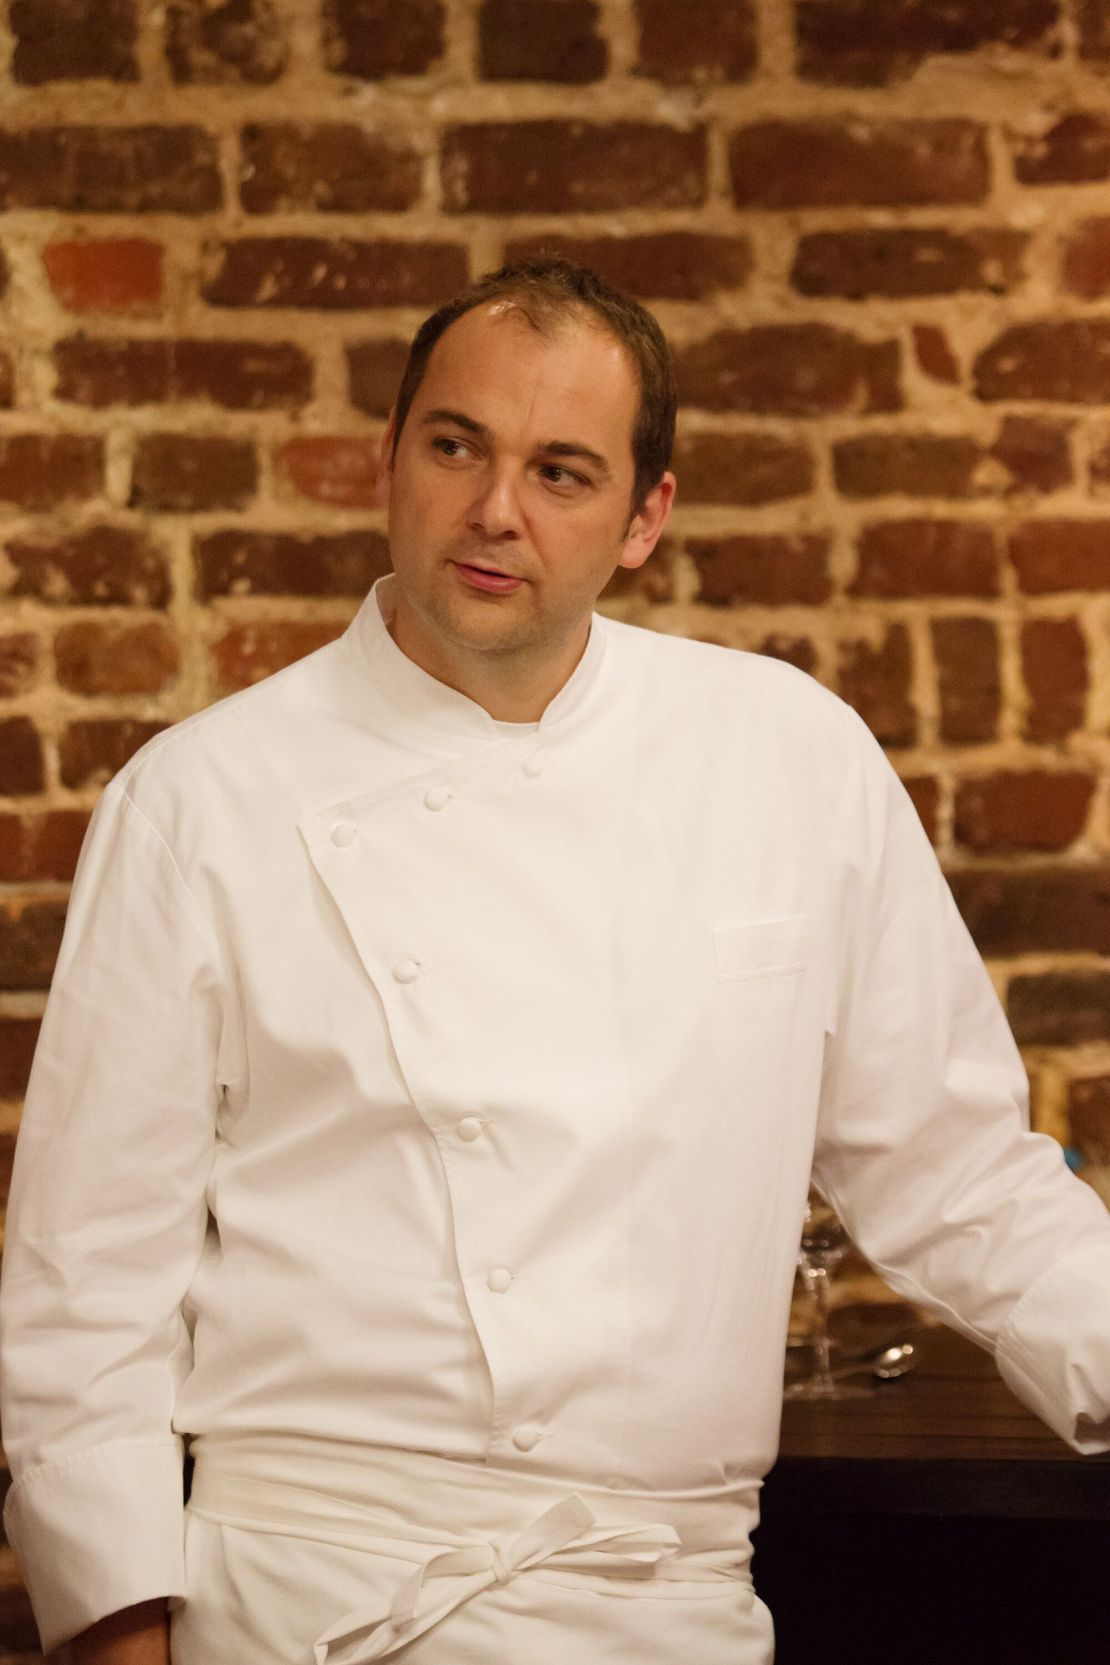 As Chef Daniel Humm prepares to reopen his restaurant, he has turned toward plant-based foods in an effort to be more environ